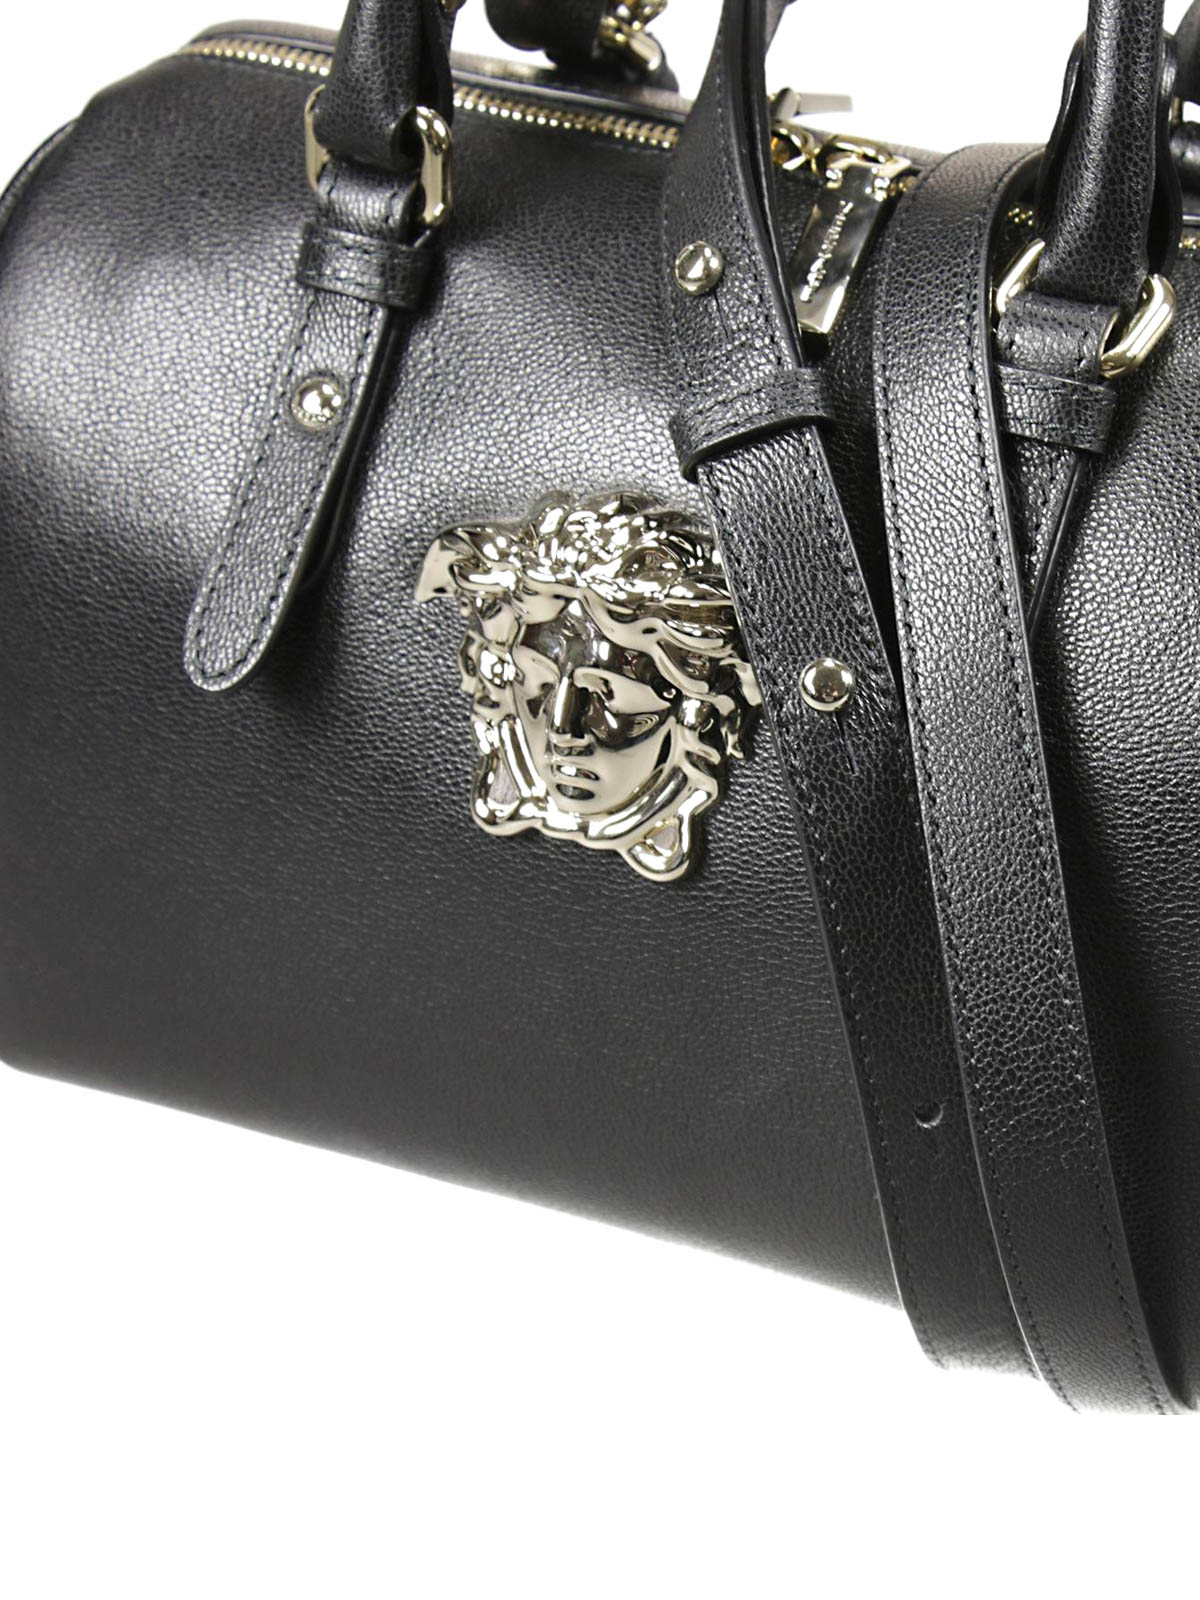 a9670300b323 Versace - Palazzo bowling bag with Medusa - bowling bags - DBFF159 DBLVT